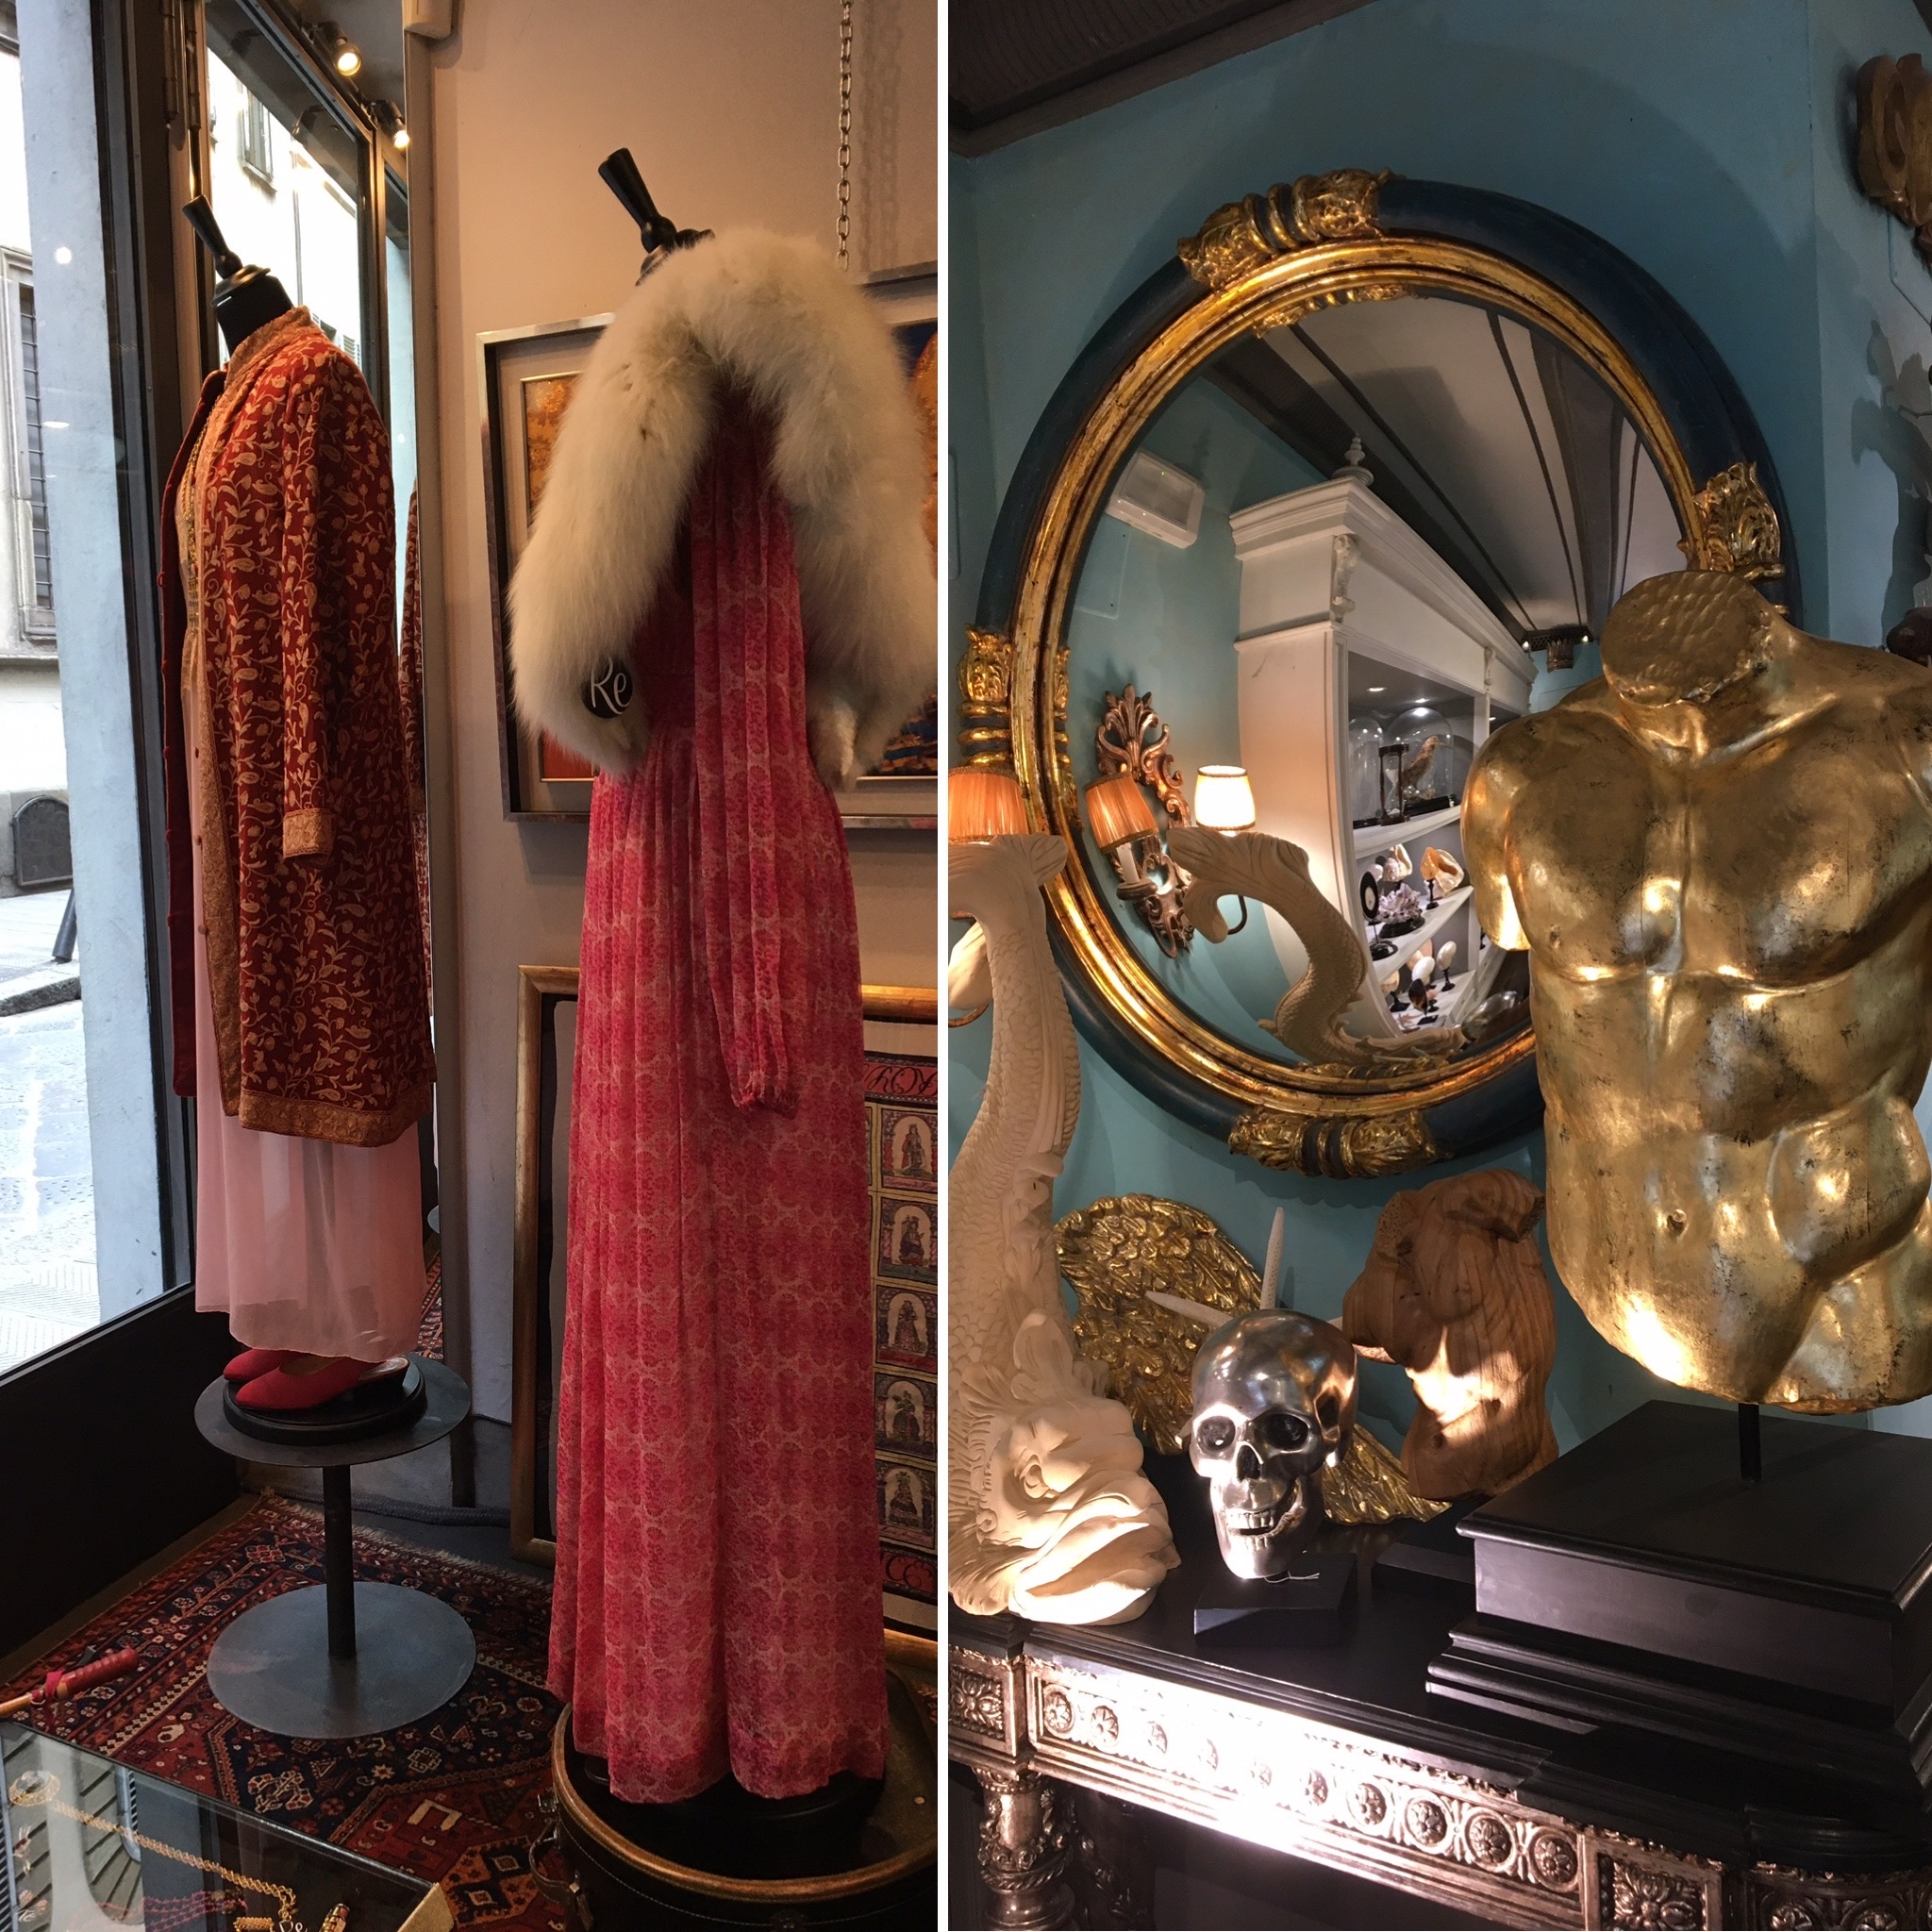 Personal Shopping experience in Florence